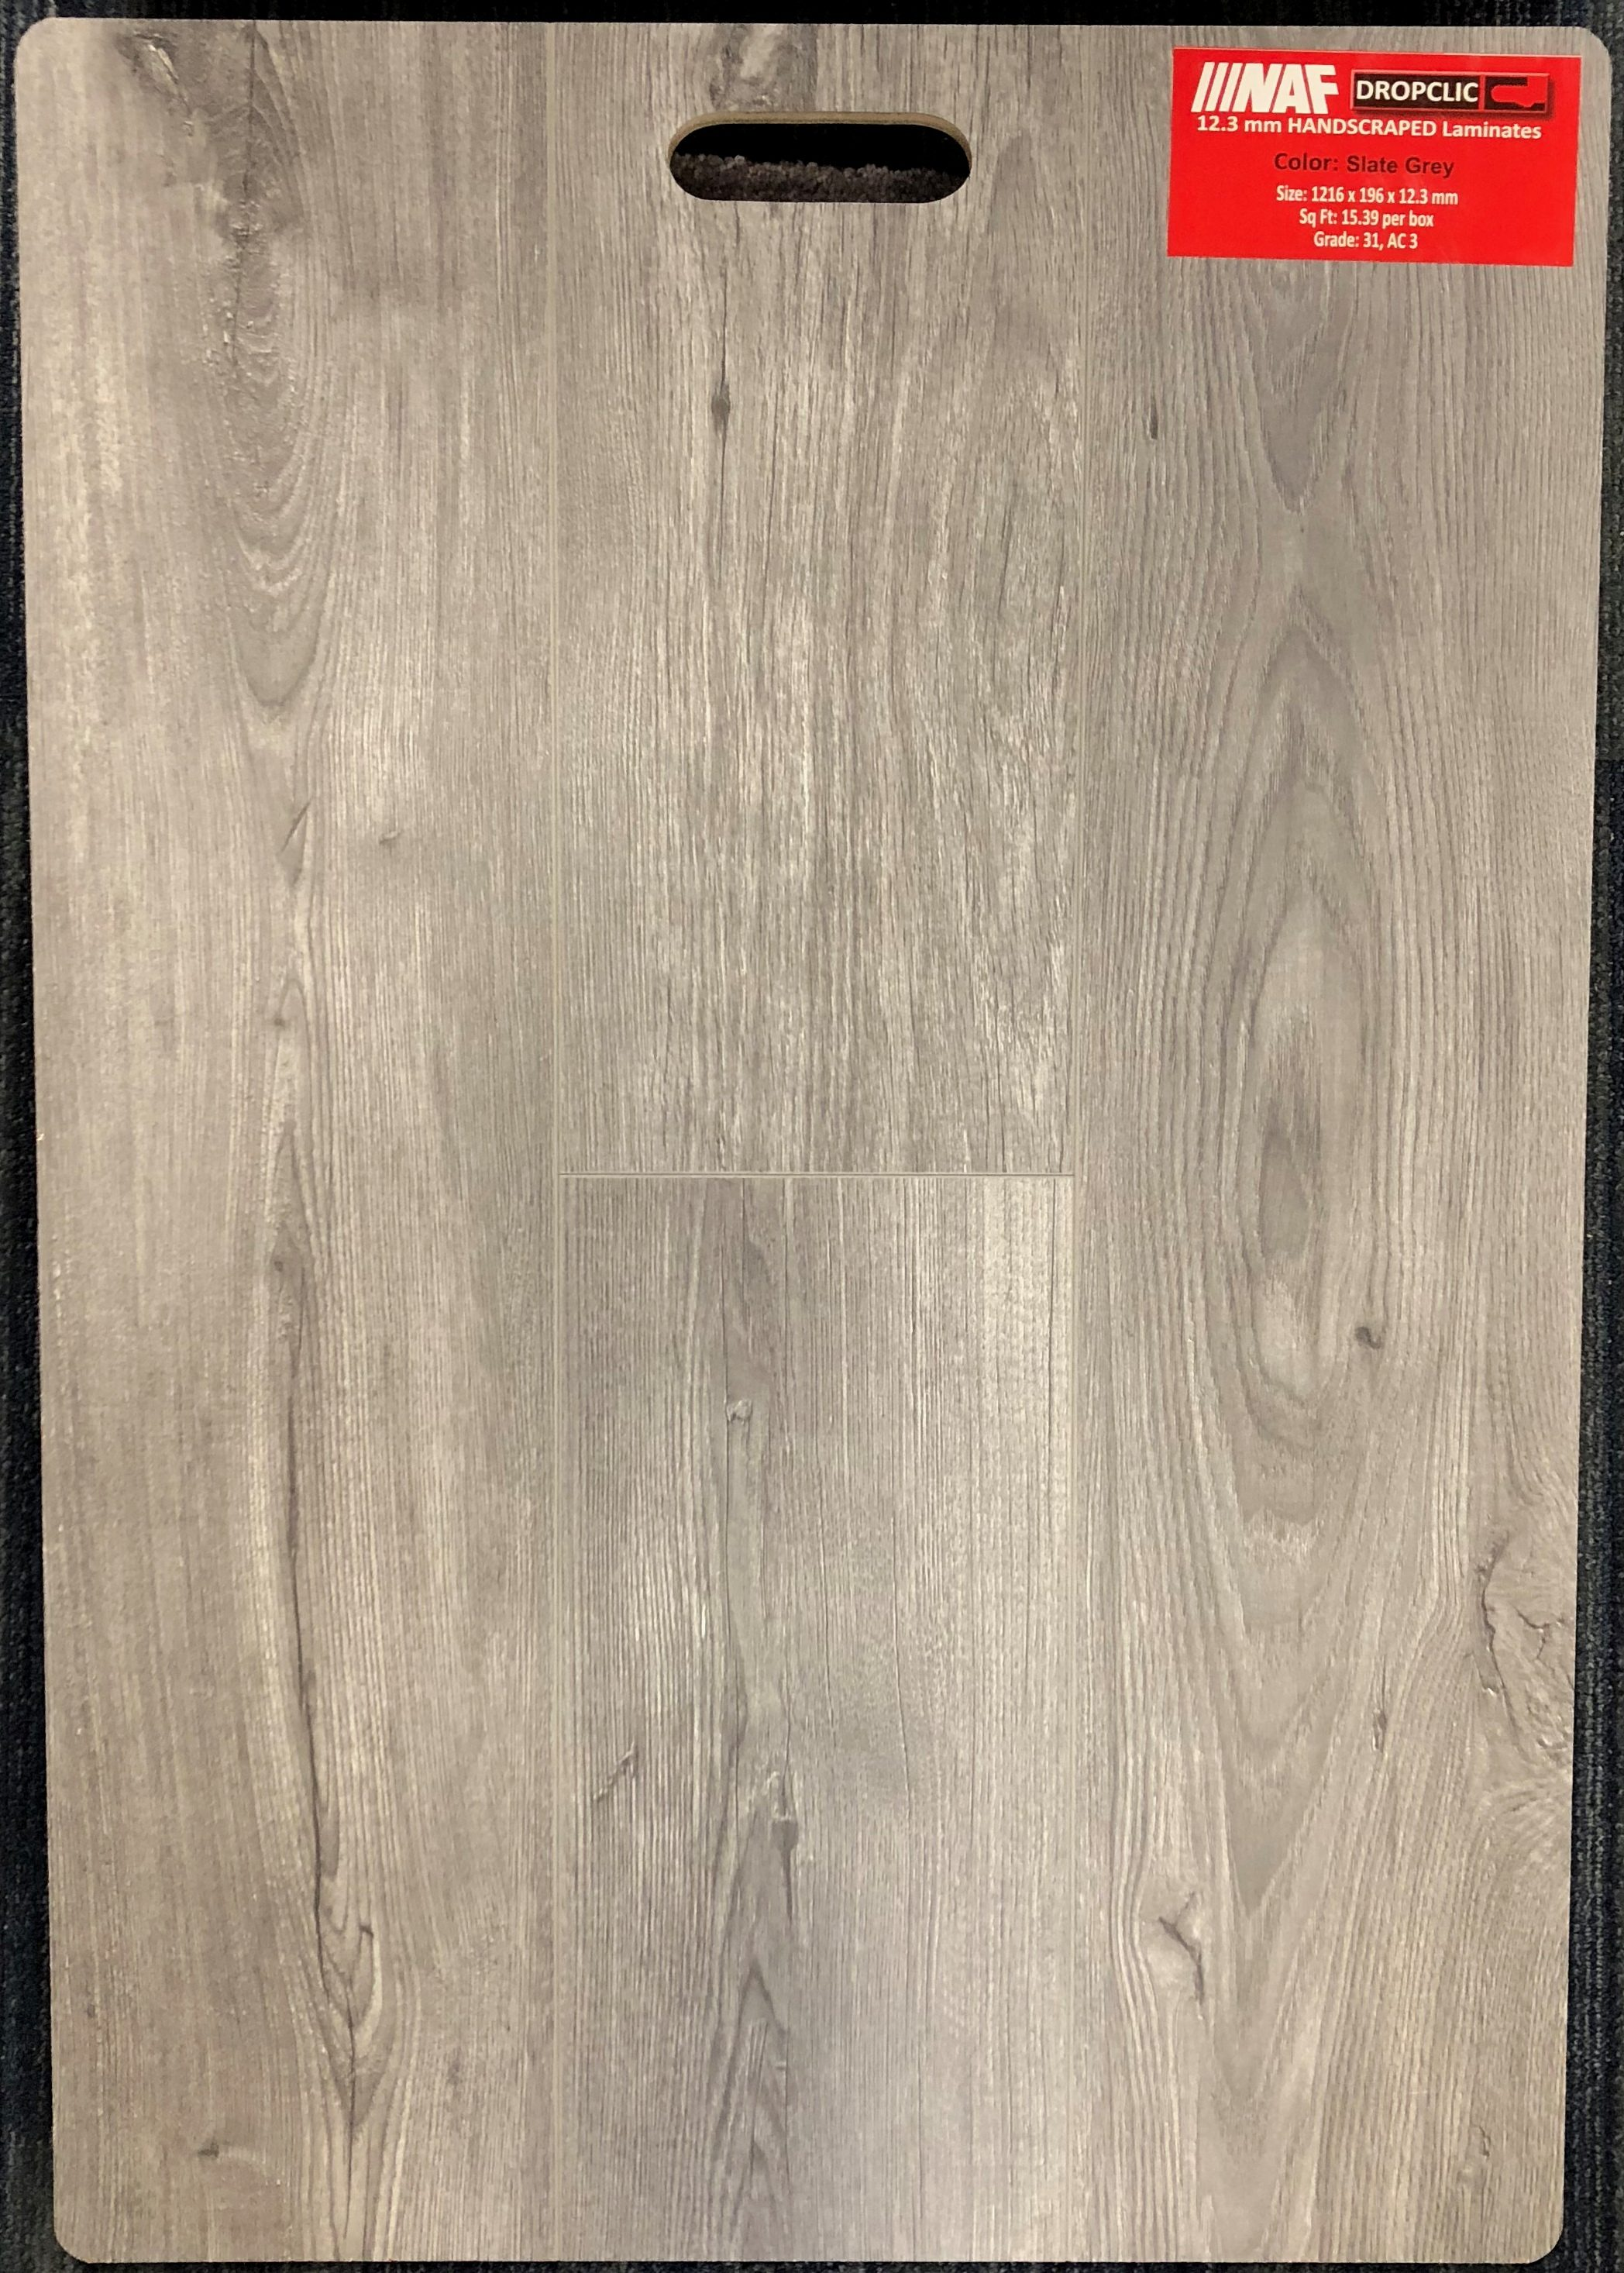 Slate Grey NAF 12.3mm Handscraped Laminate Flooring Image